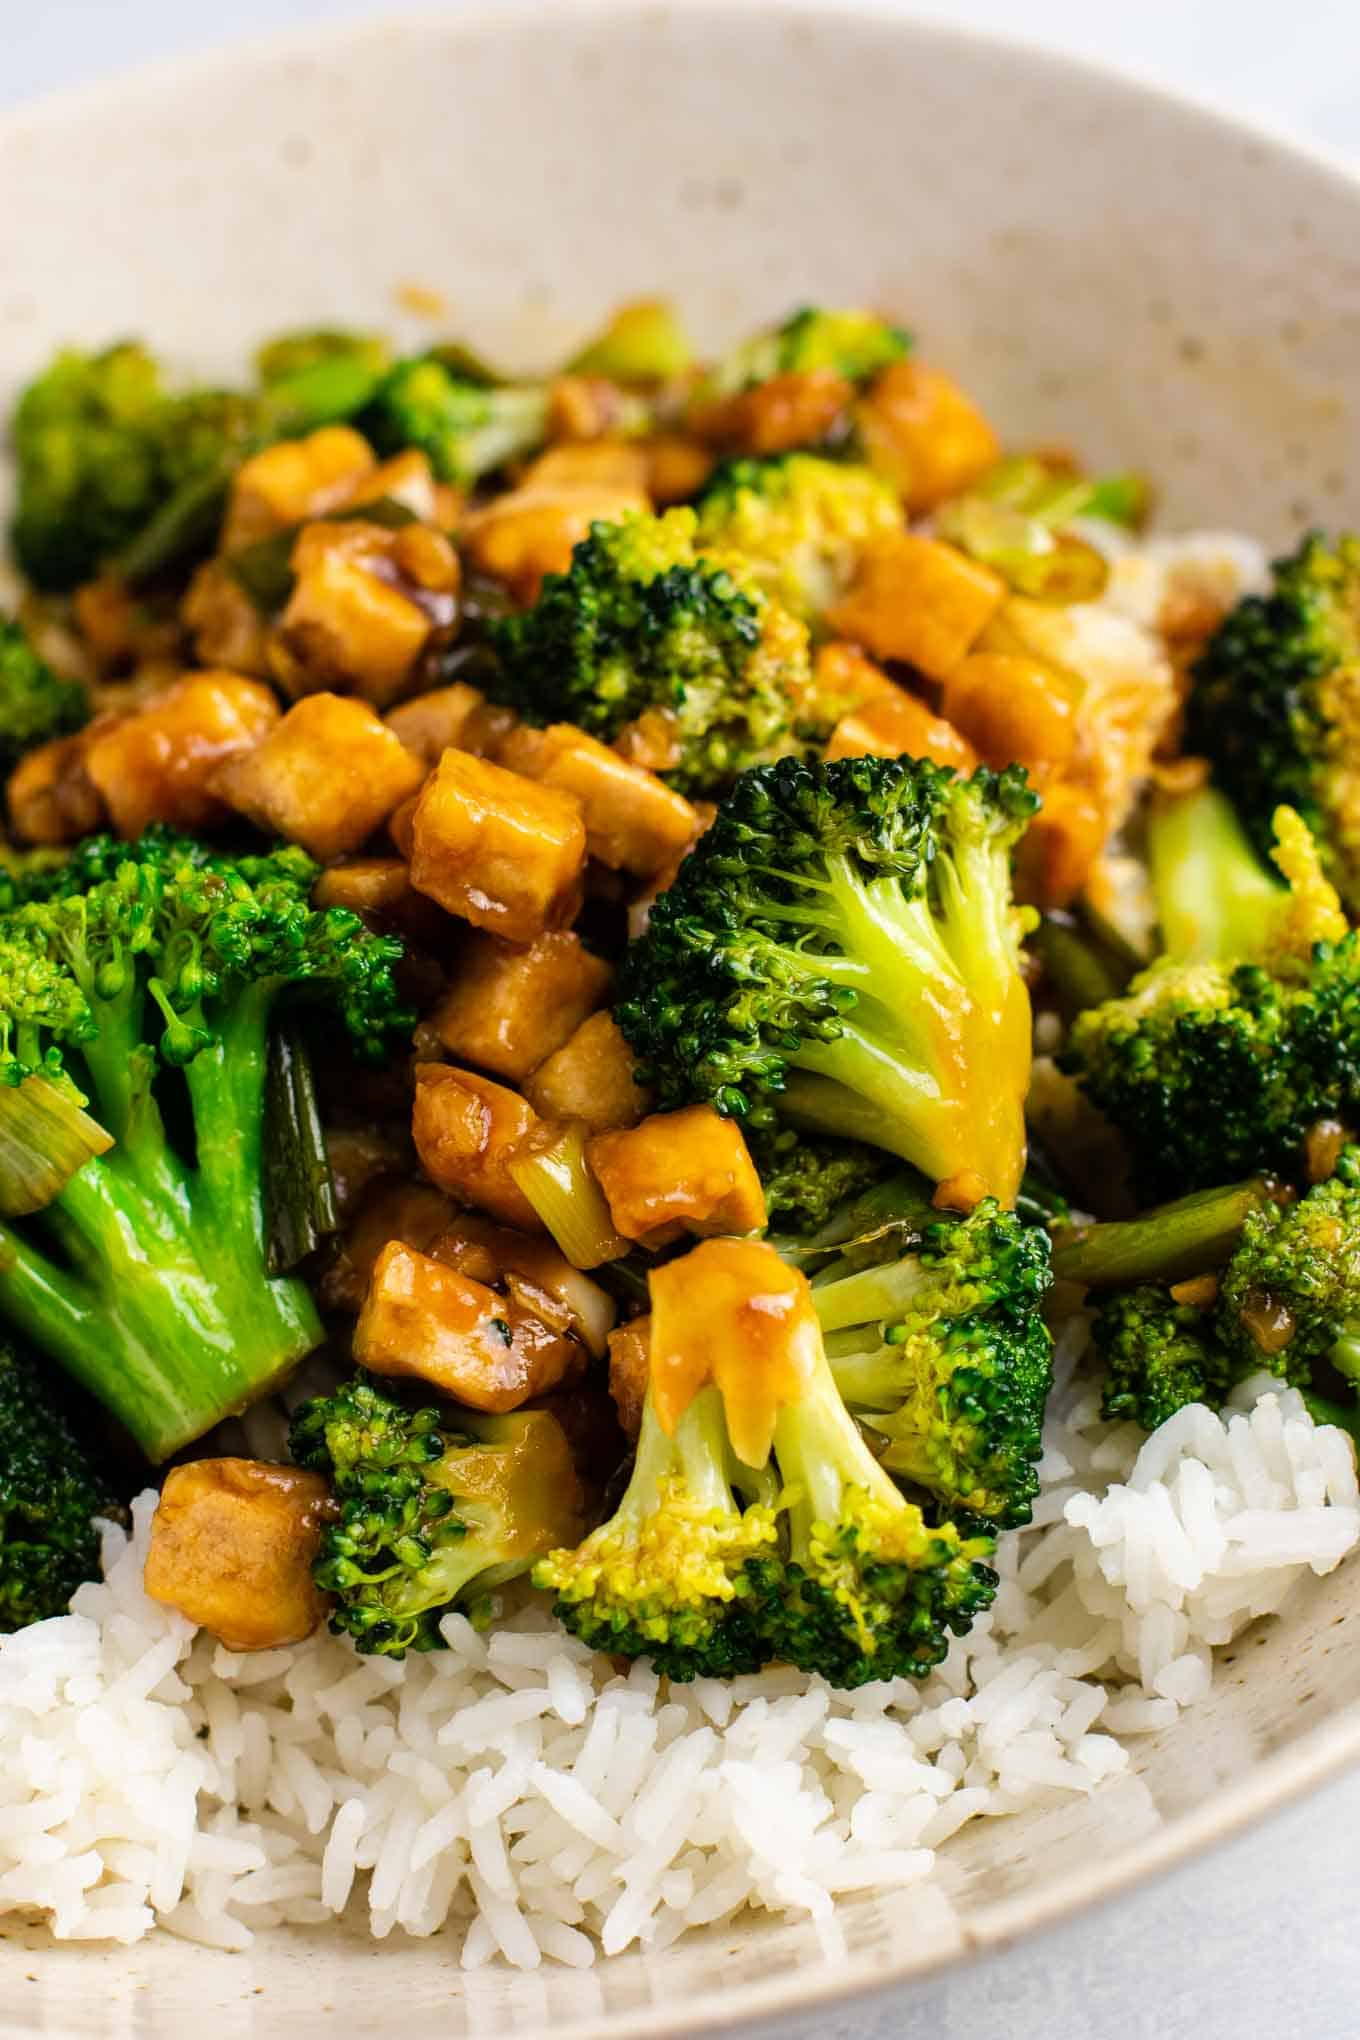 Broccoil and tofu stir fry – so easy and tastes amazing! #broccoli #tofu #stirfry #stirfrysauce #vegan #dinner #dinnerrecipe #stirfryrecipe #tofubroccoli #garlictofu